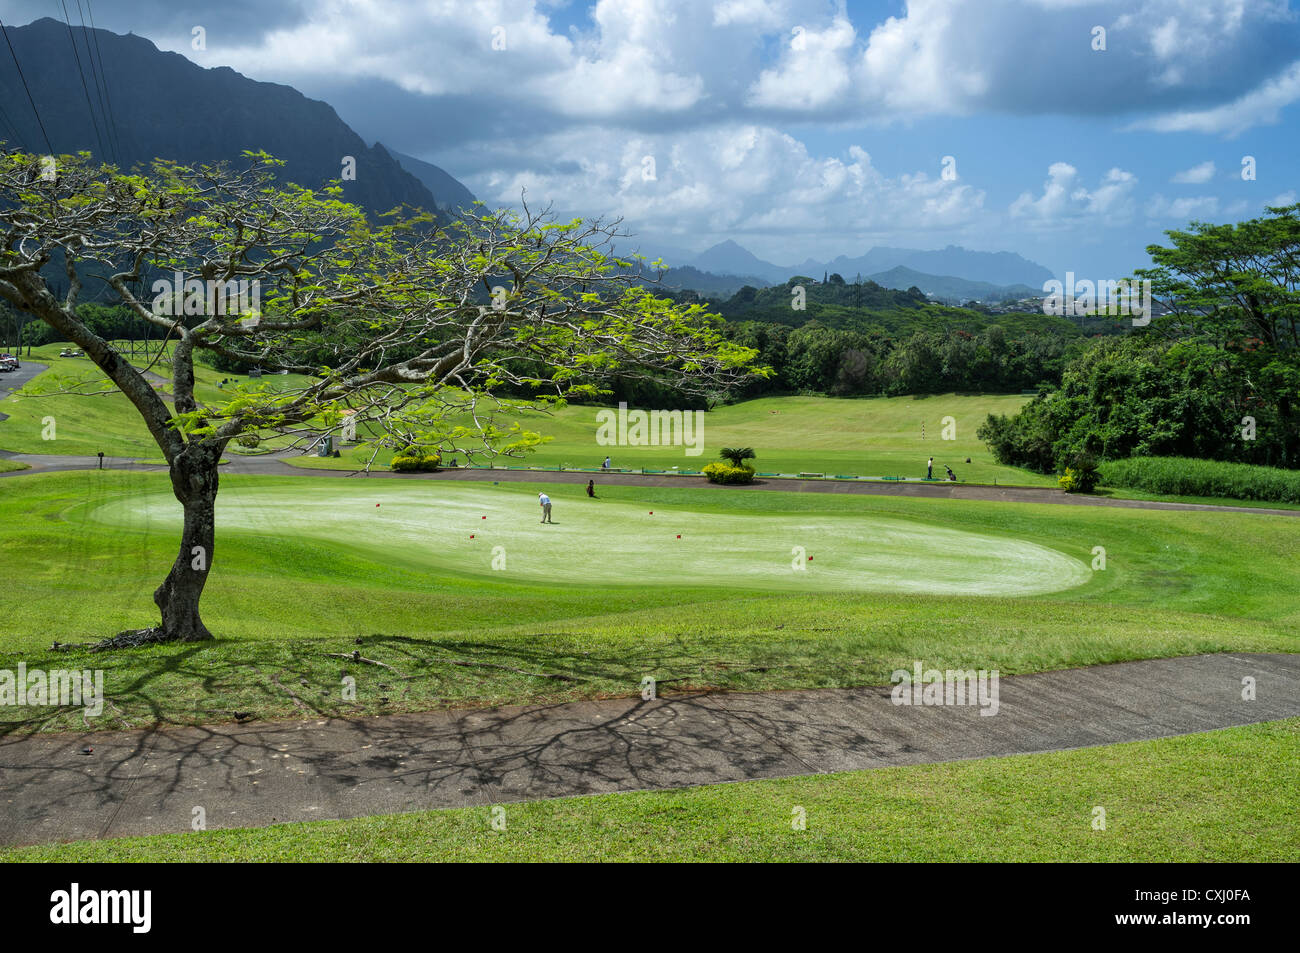 Pratica putting green e driving range a Ko'olau Golf Club nei pressi di Ko'olau Range in Kaneohe, Hawaii. Immagini Stock